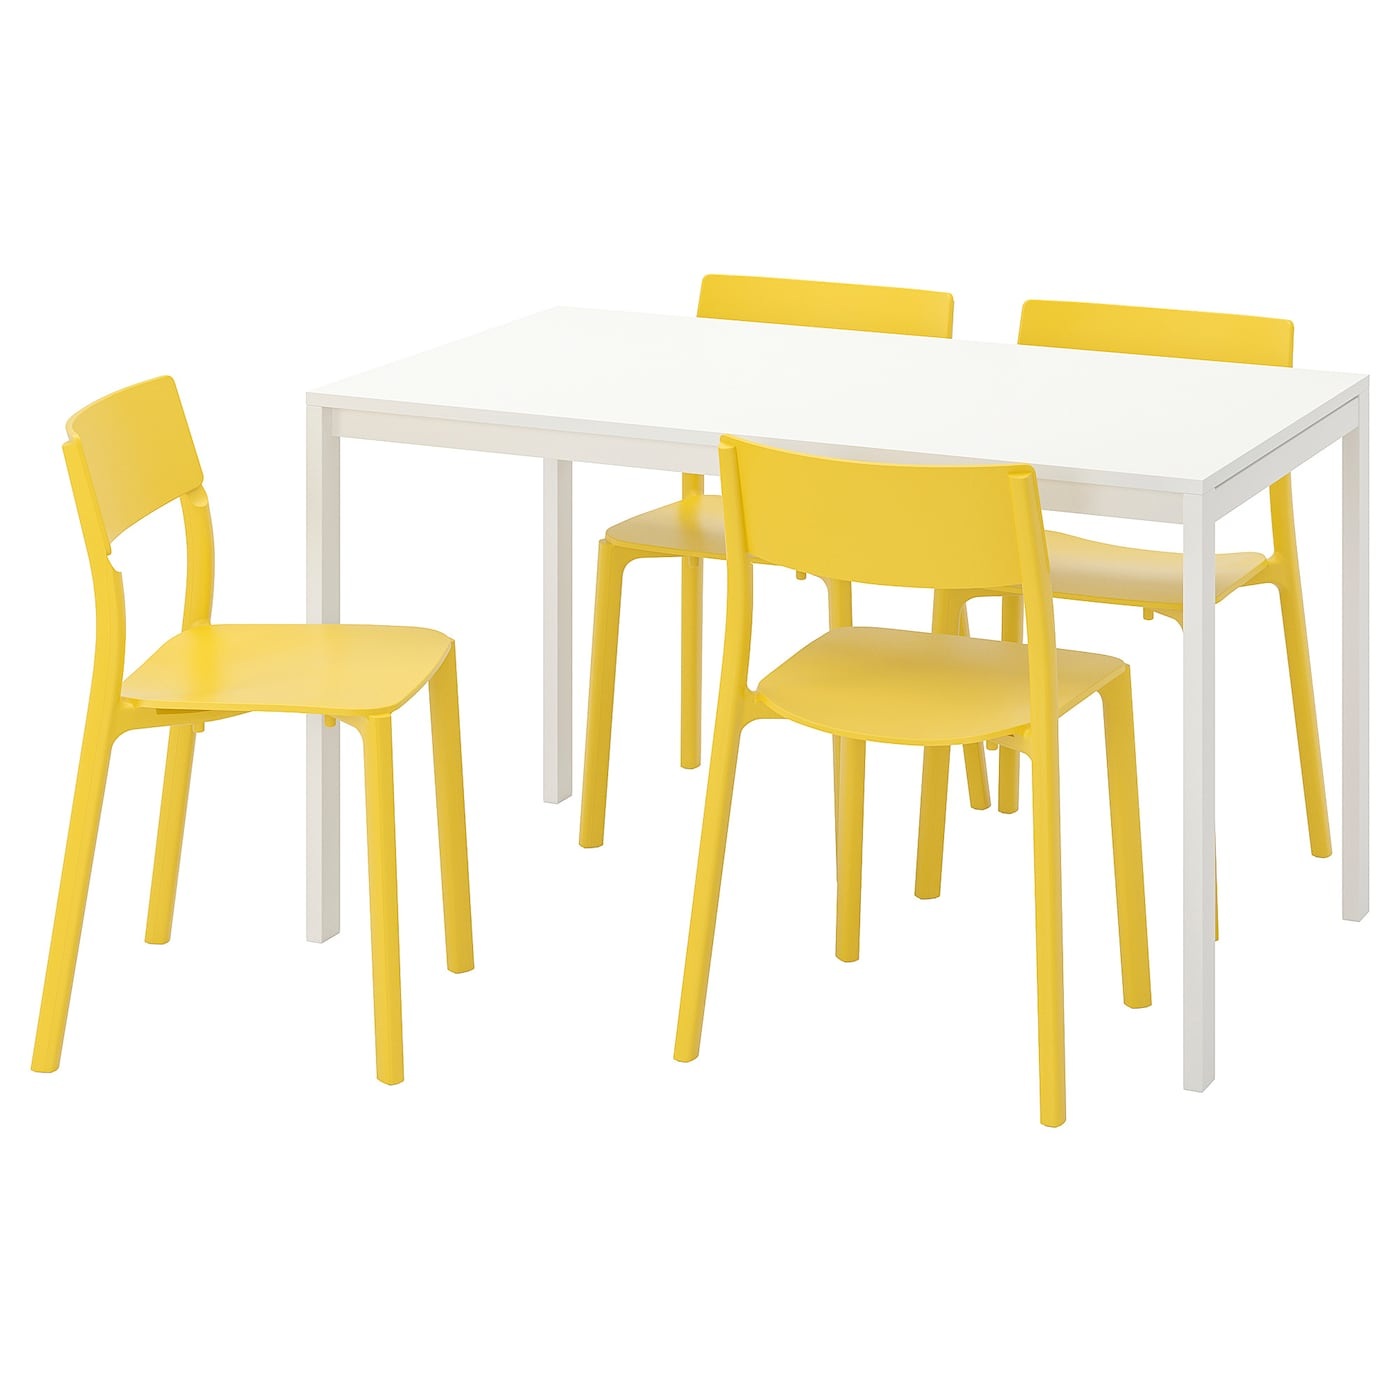 MELLTORP / JANINGE Table and 10 chairs - white/yellow 10 cm